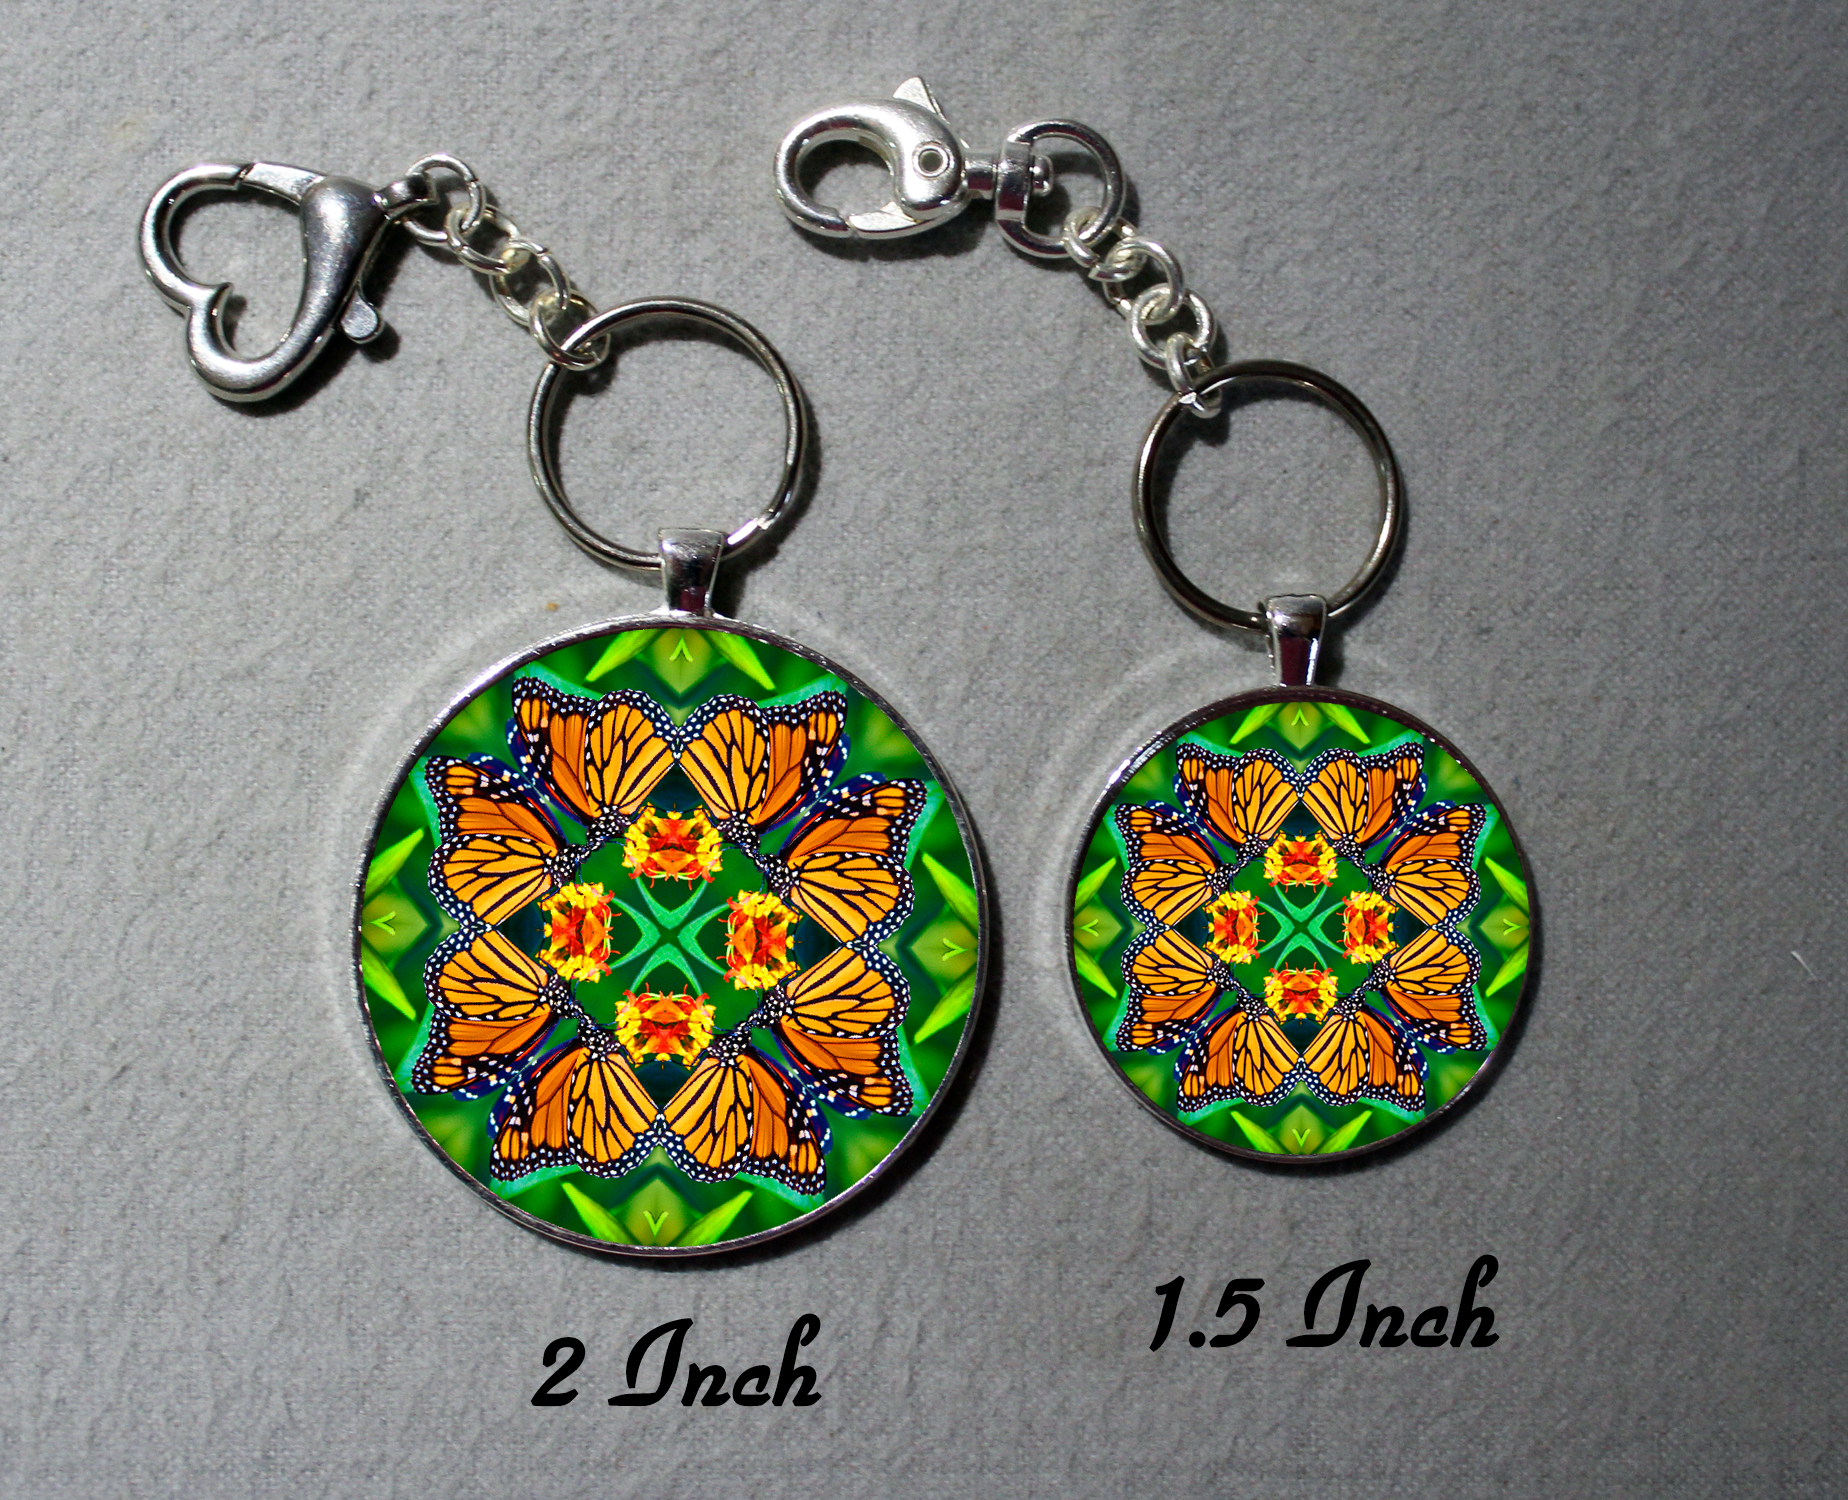 Keychain Monarch Butterfly Purse Charm Bag Charm Mandala Accessory Unique Gift Transcendence